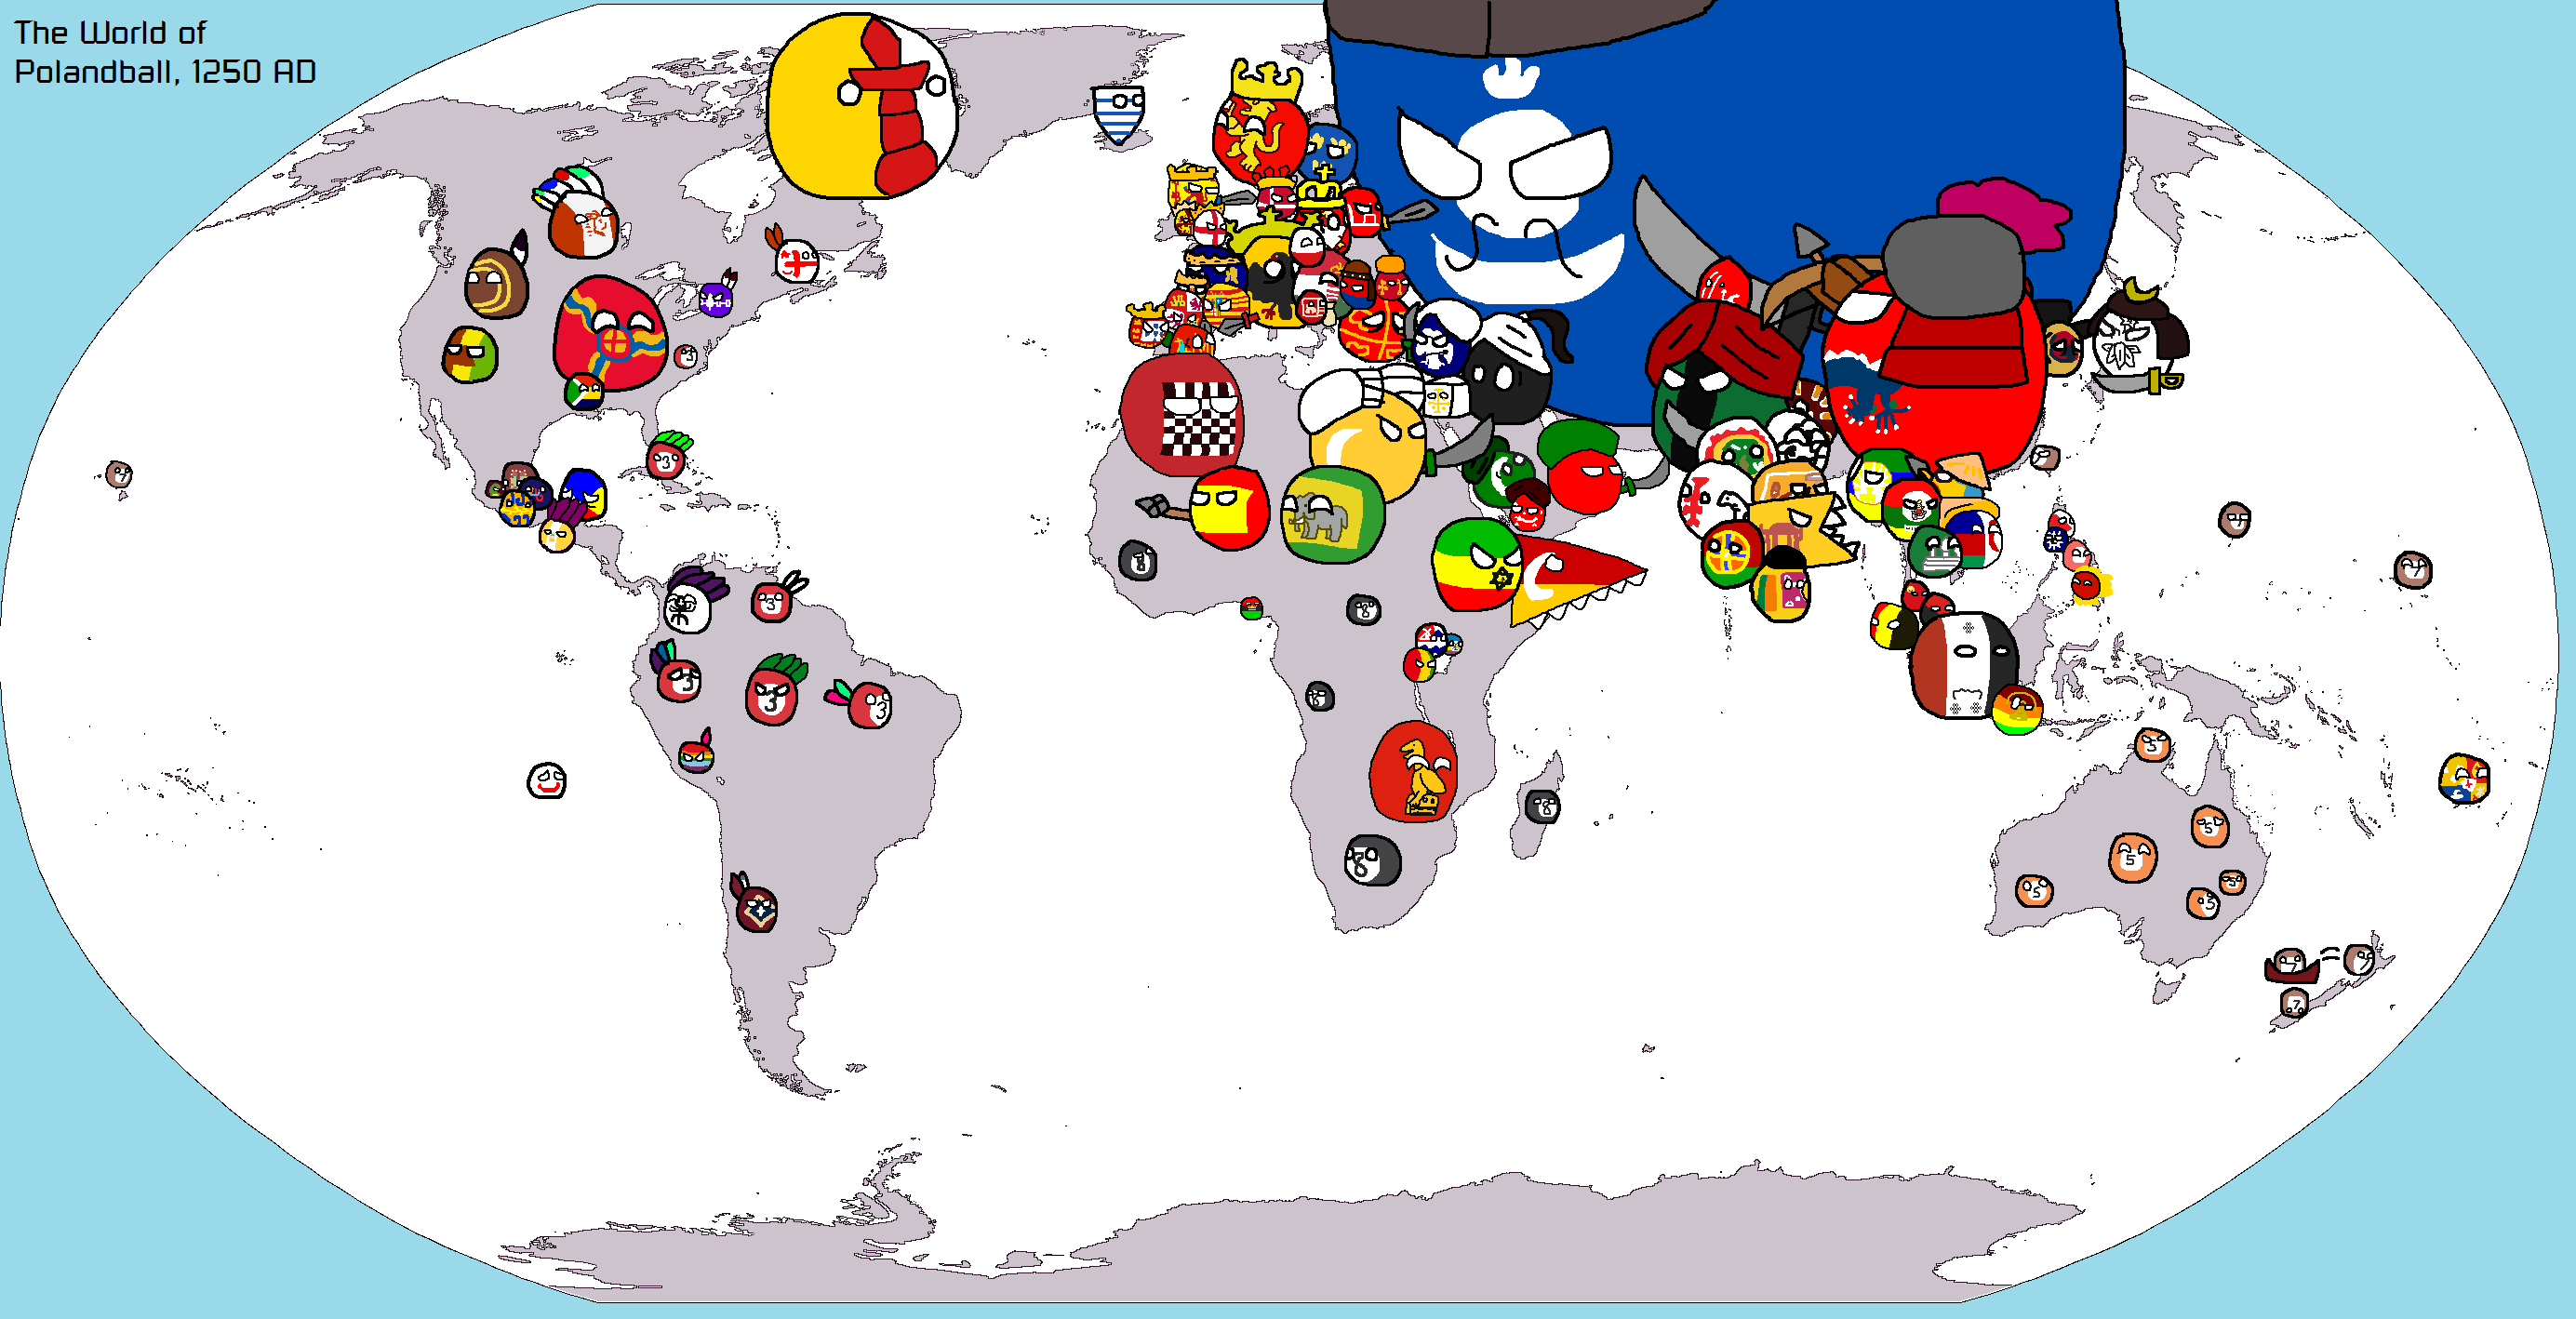 Polandball map of earth 1250 ad by ragameechu on deviantart polandball map of earth 1250 ad by ragameechu sciox Images